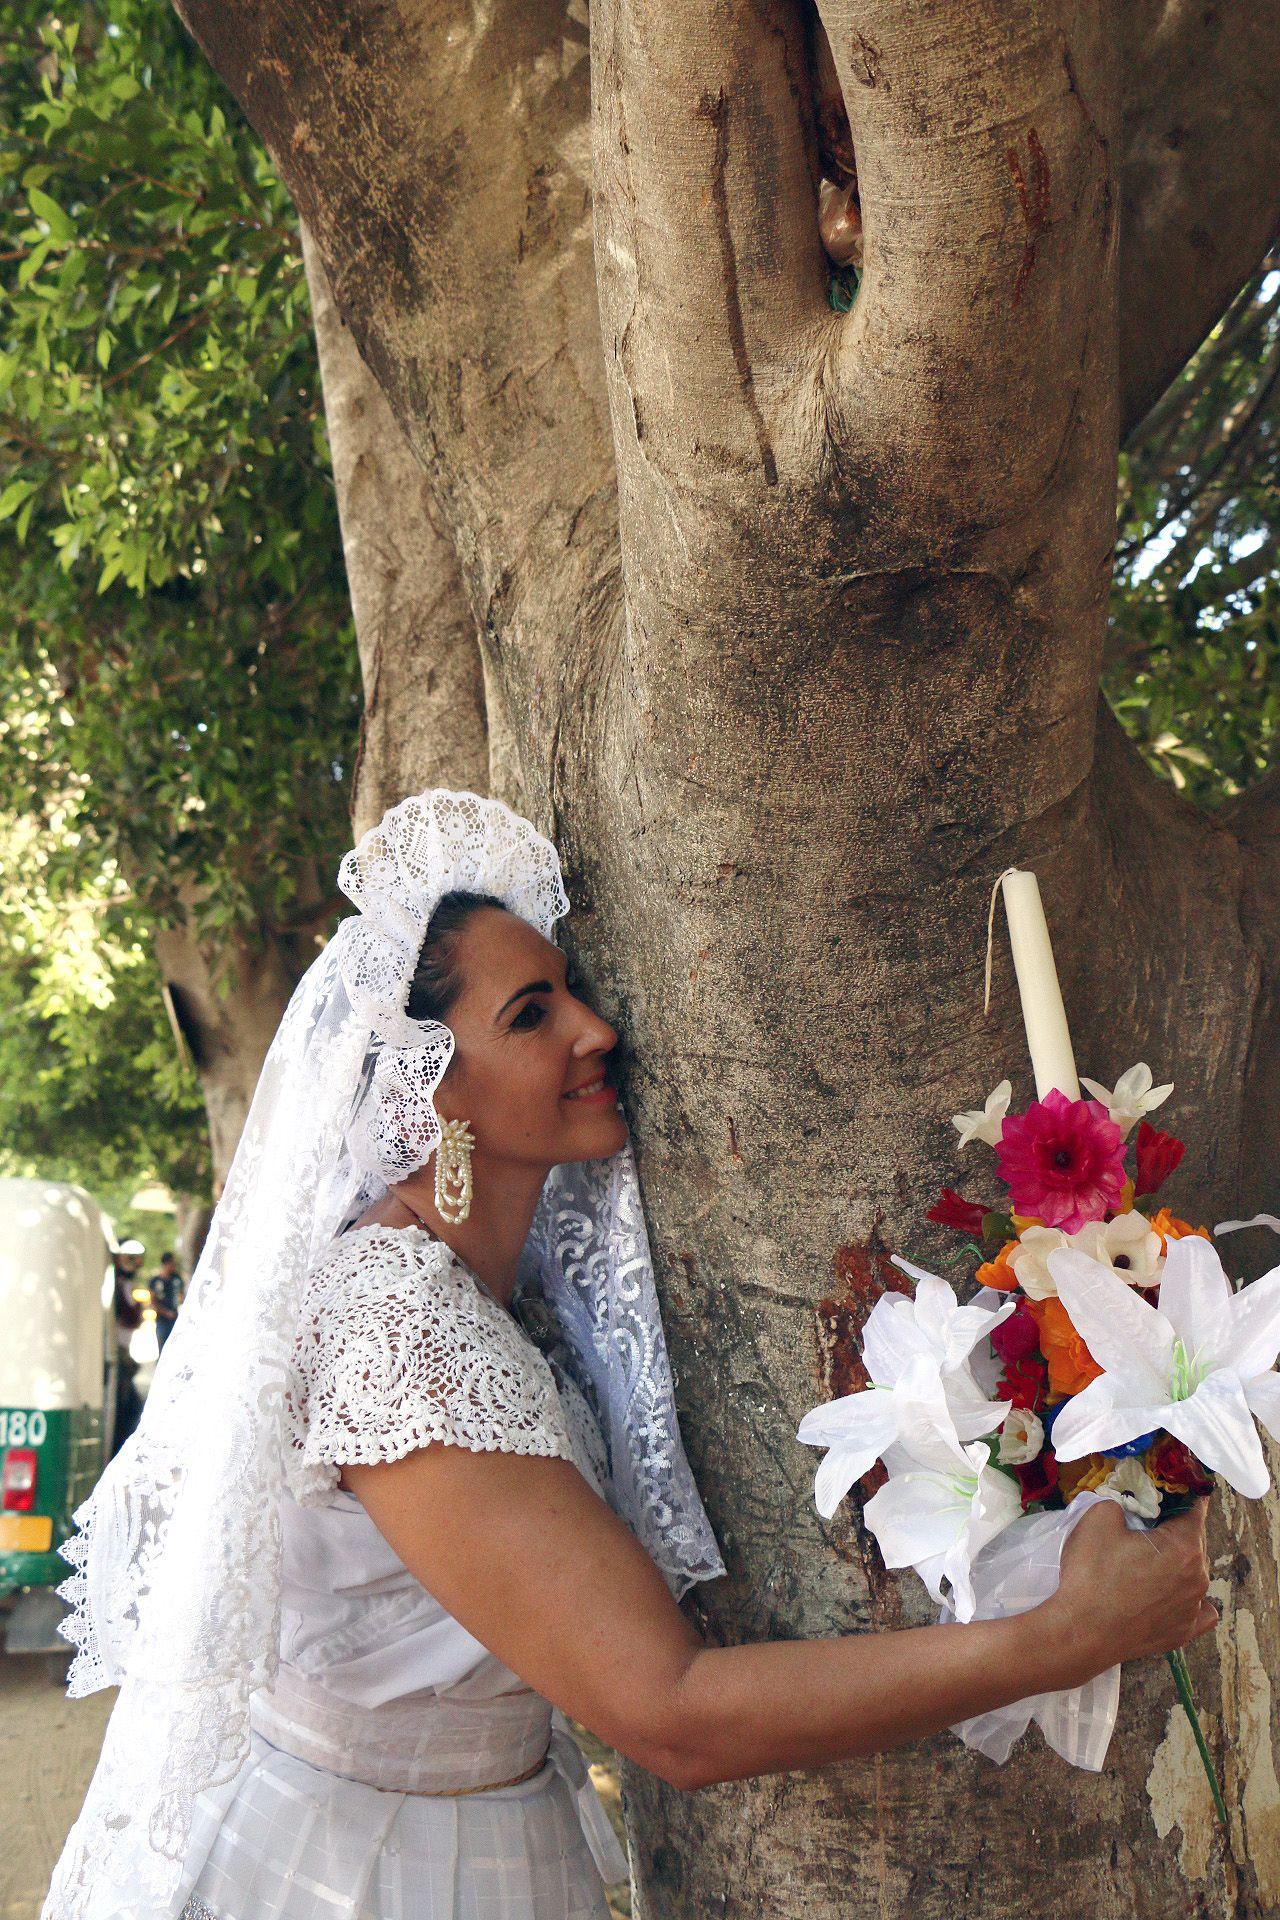 Mexican ladies for marriage